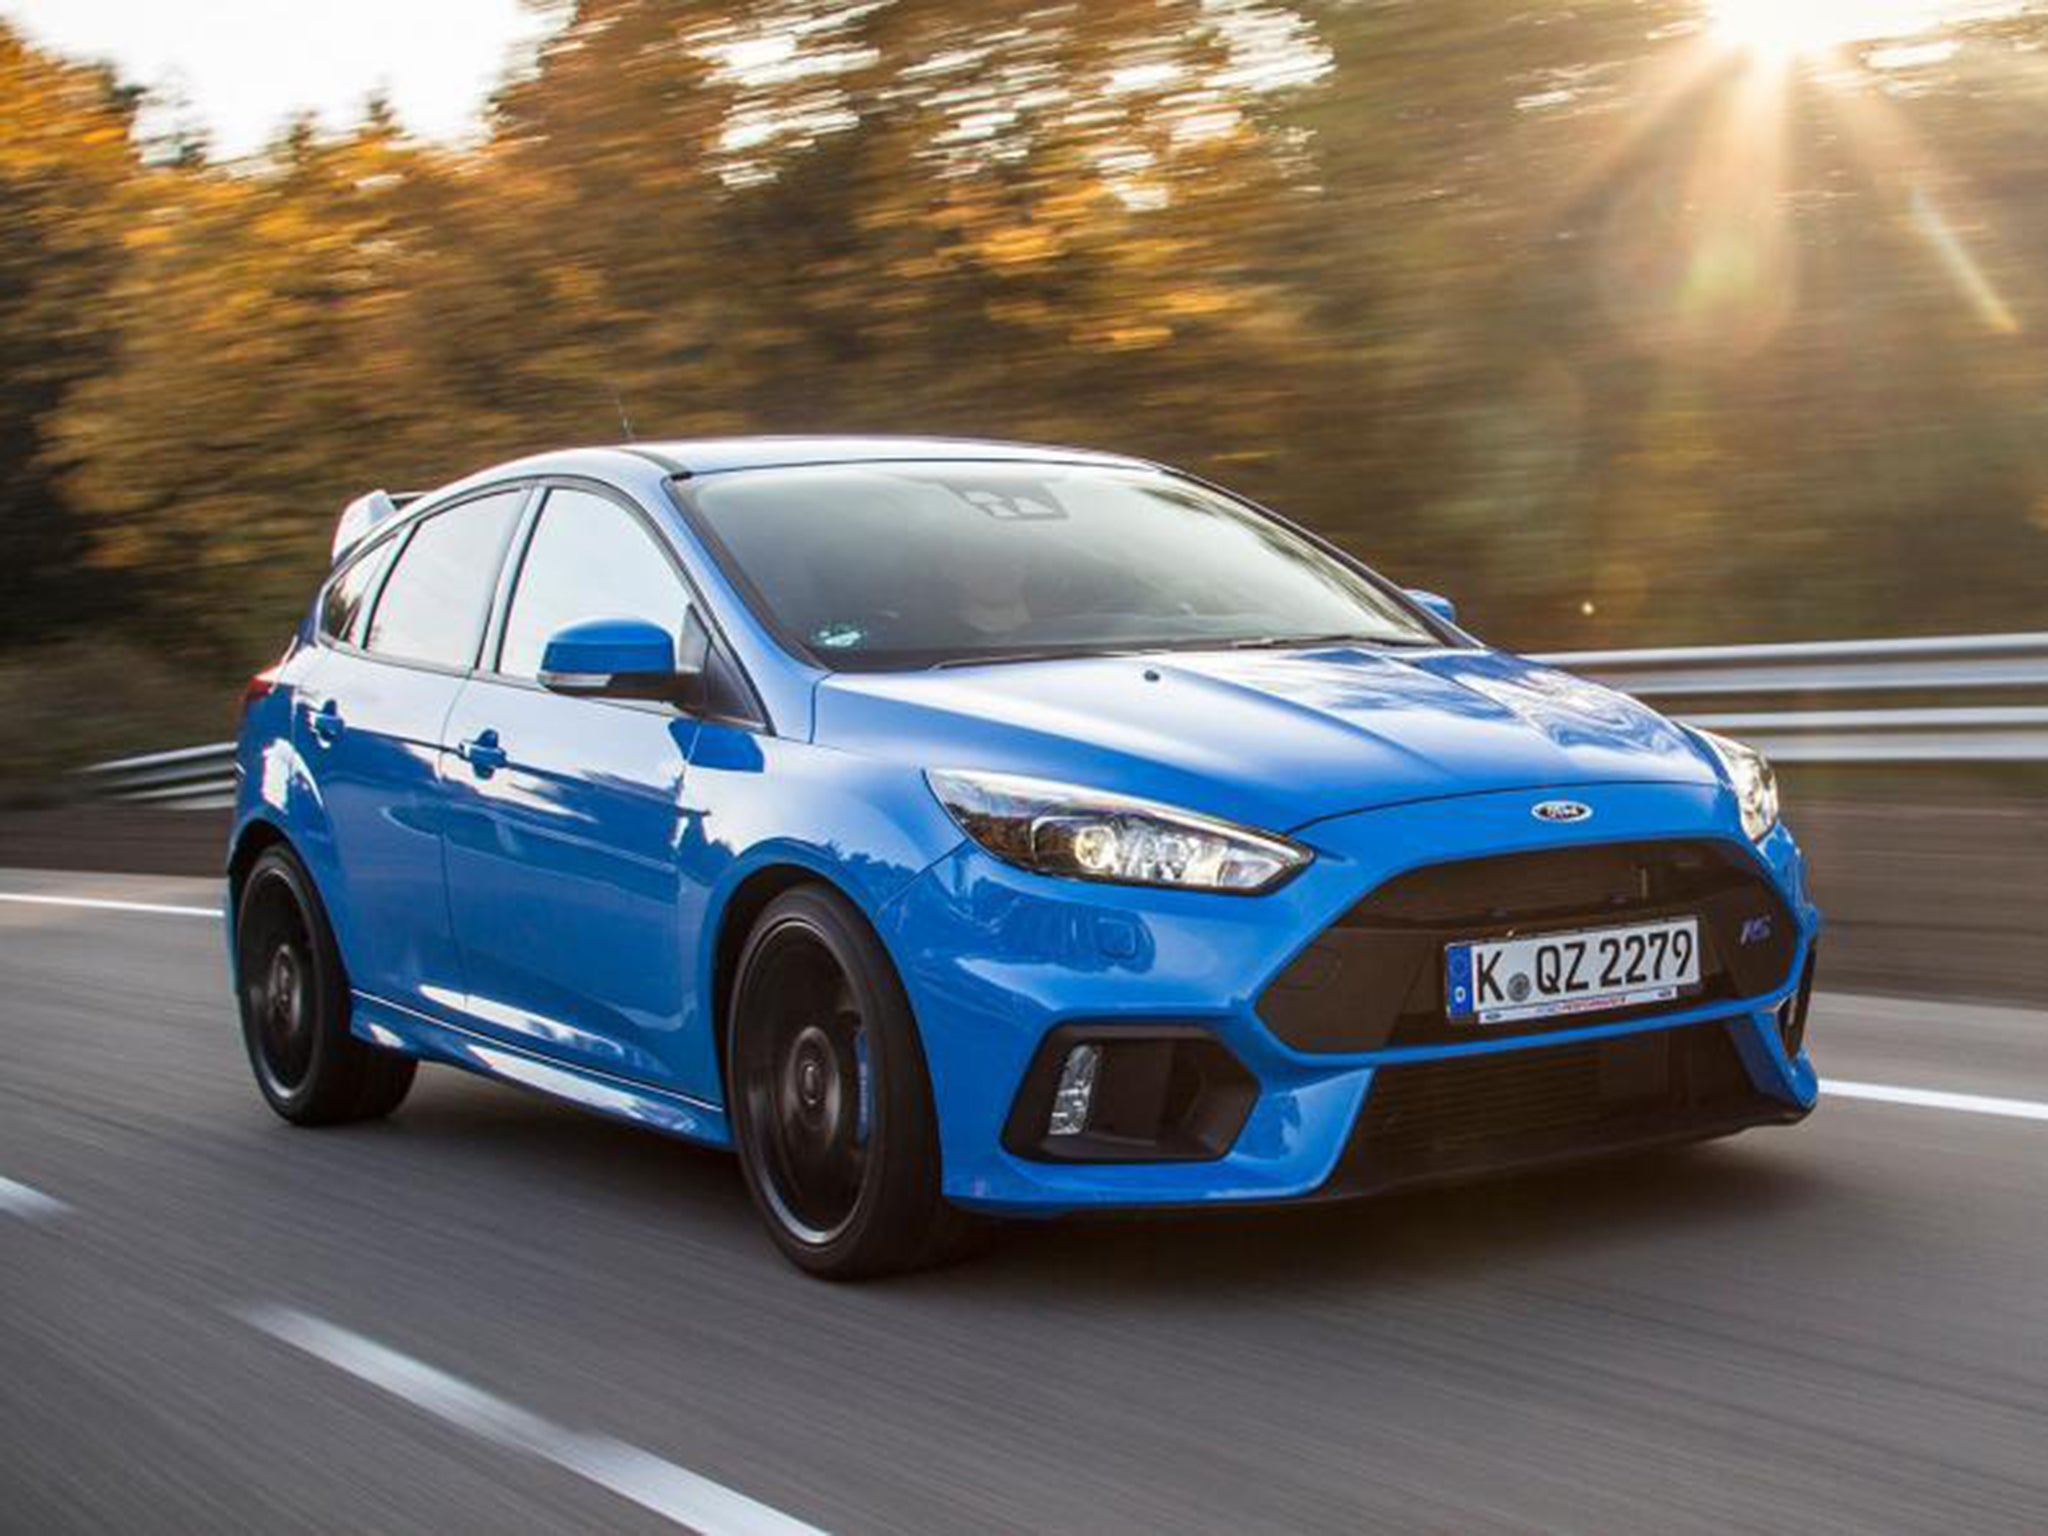 2016 ford focus rs car review this gives you enormous. Black Bedroom Furniture Sets. Home Design Ideas